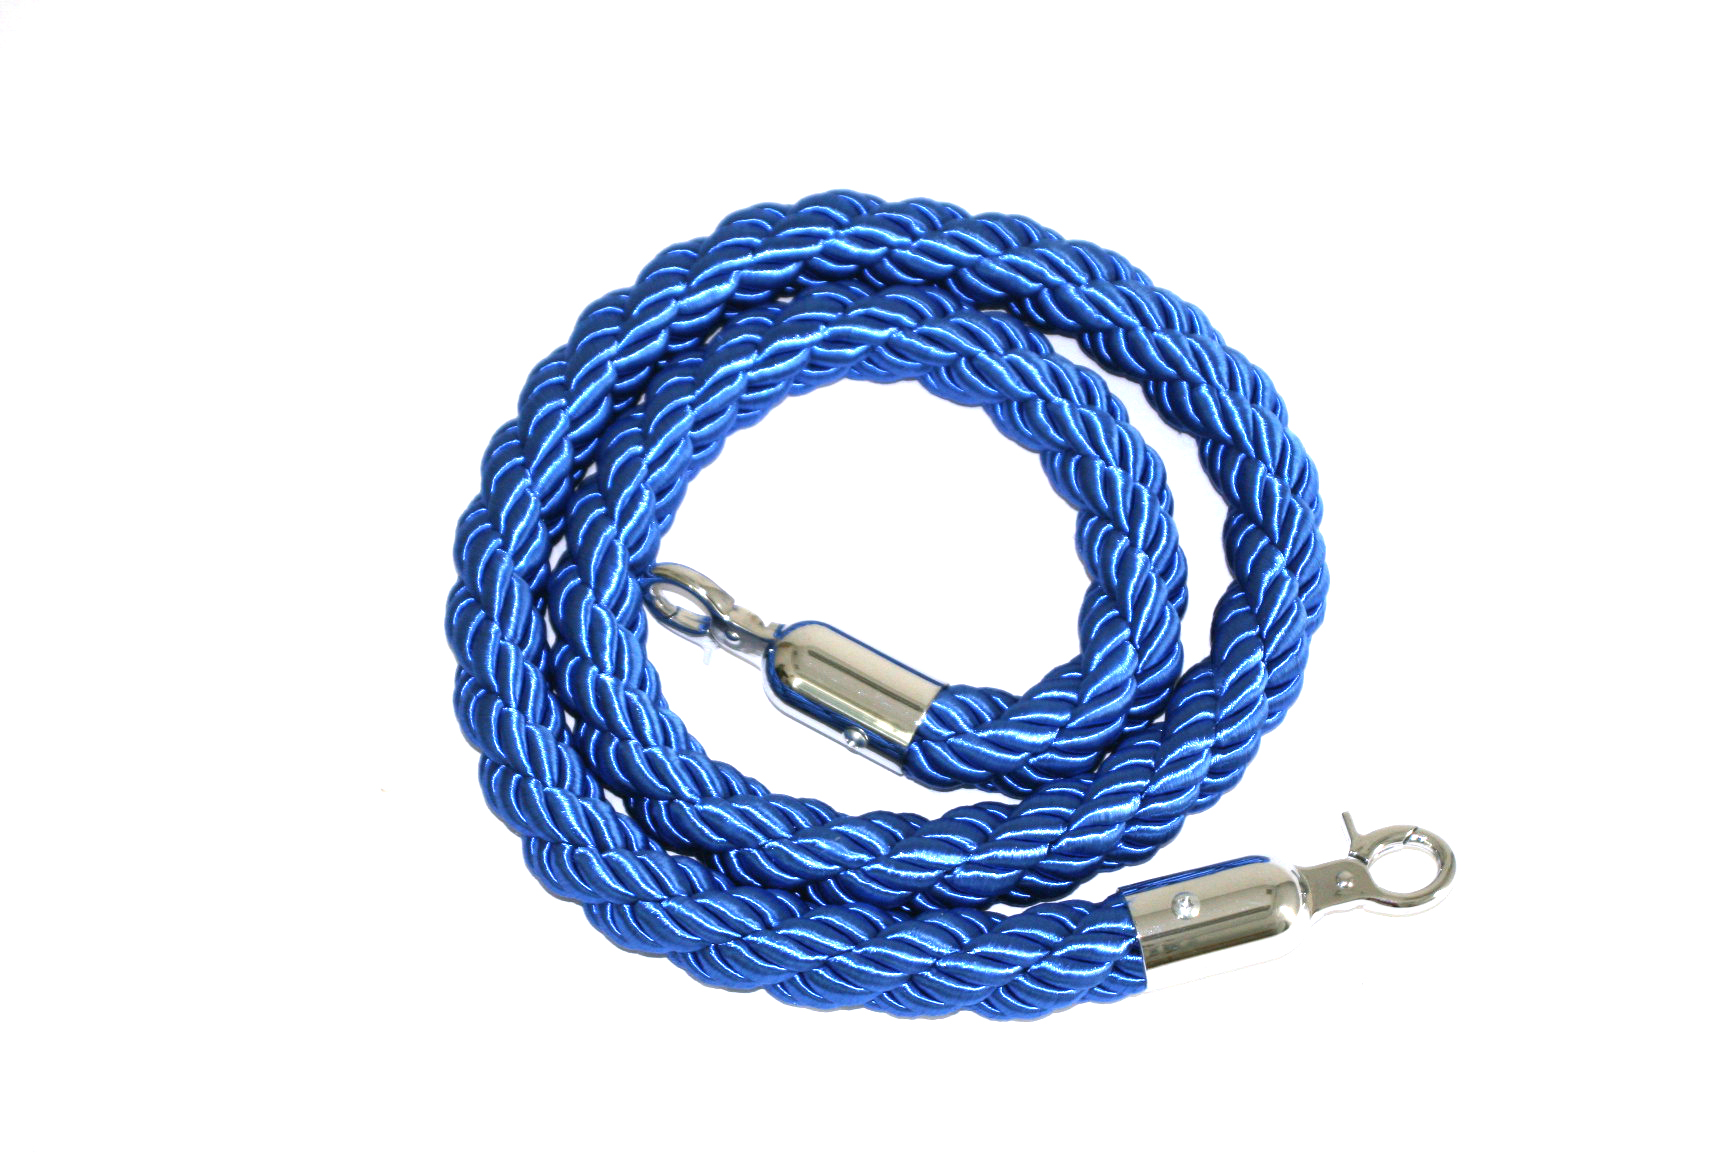 Blue braided rope, 1.5 meters in length - BE Event Hire